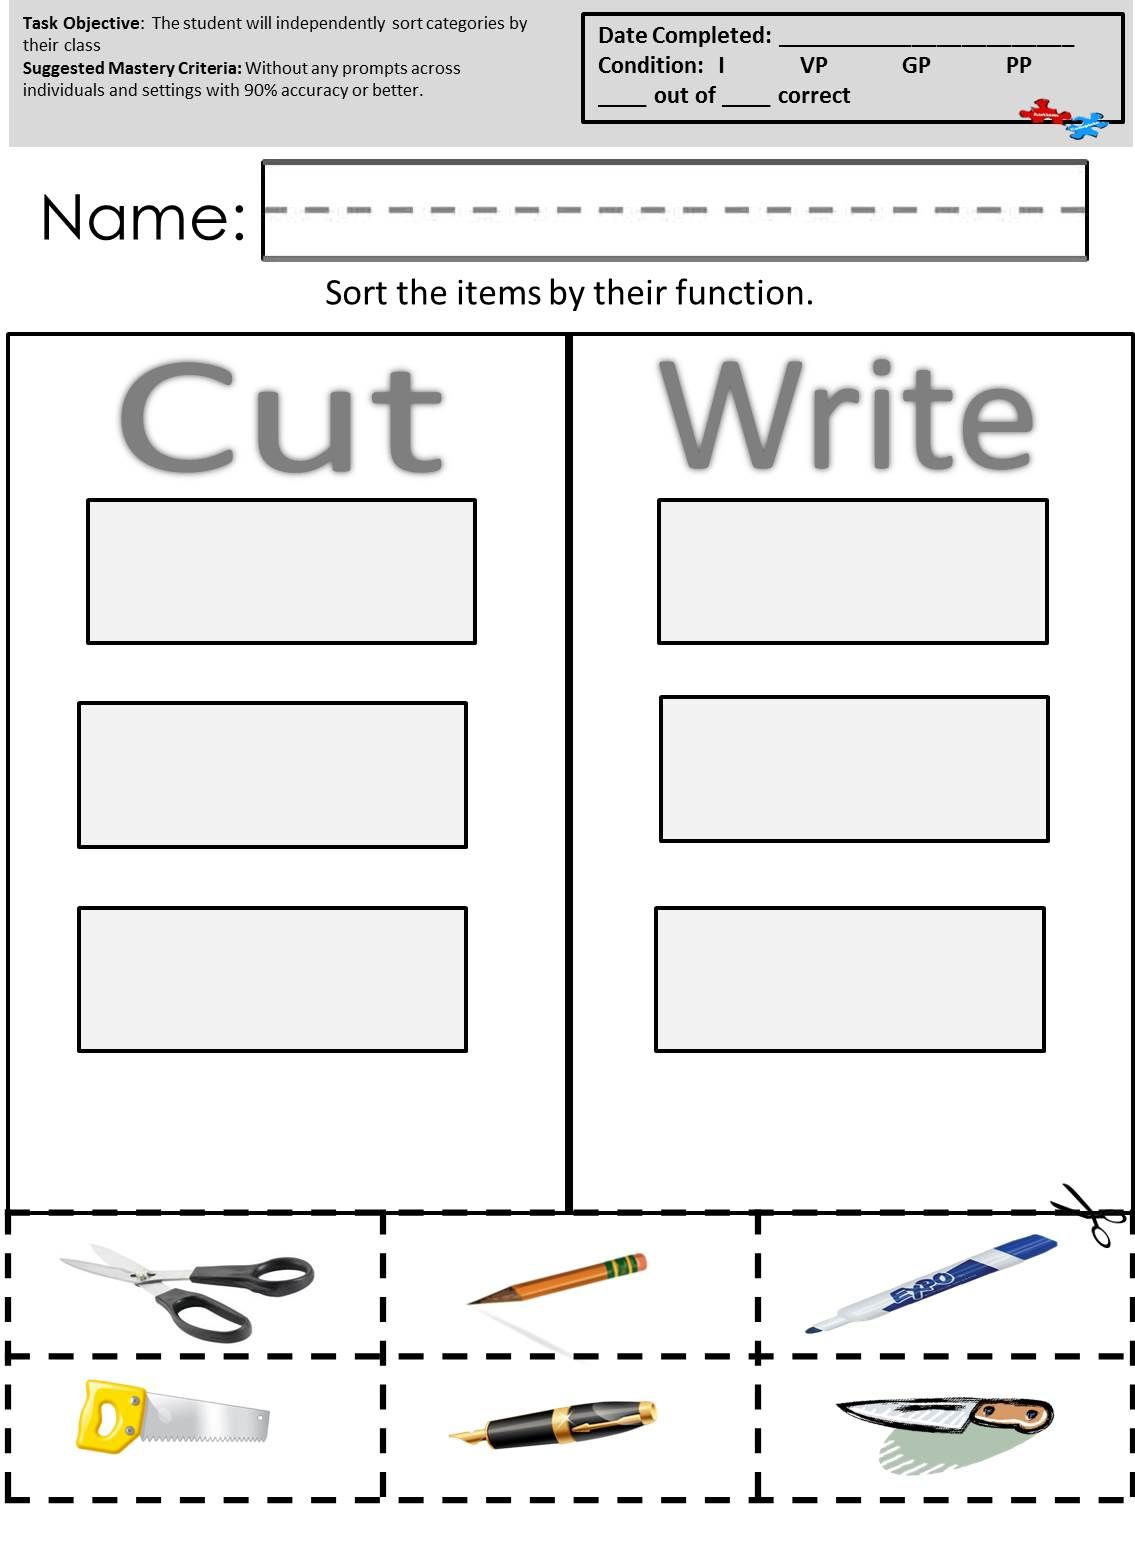 Practice Important Skills Easily With These Worksheets Available At Autismcomplete